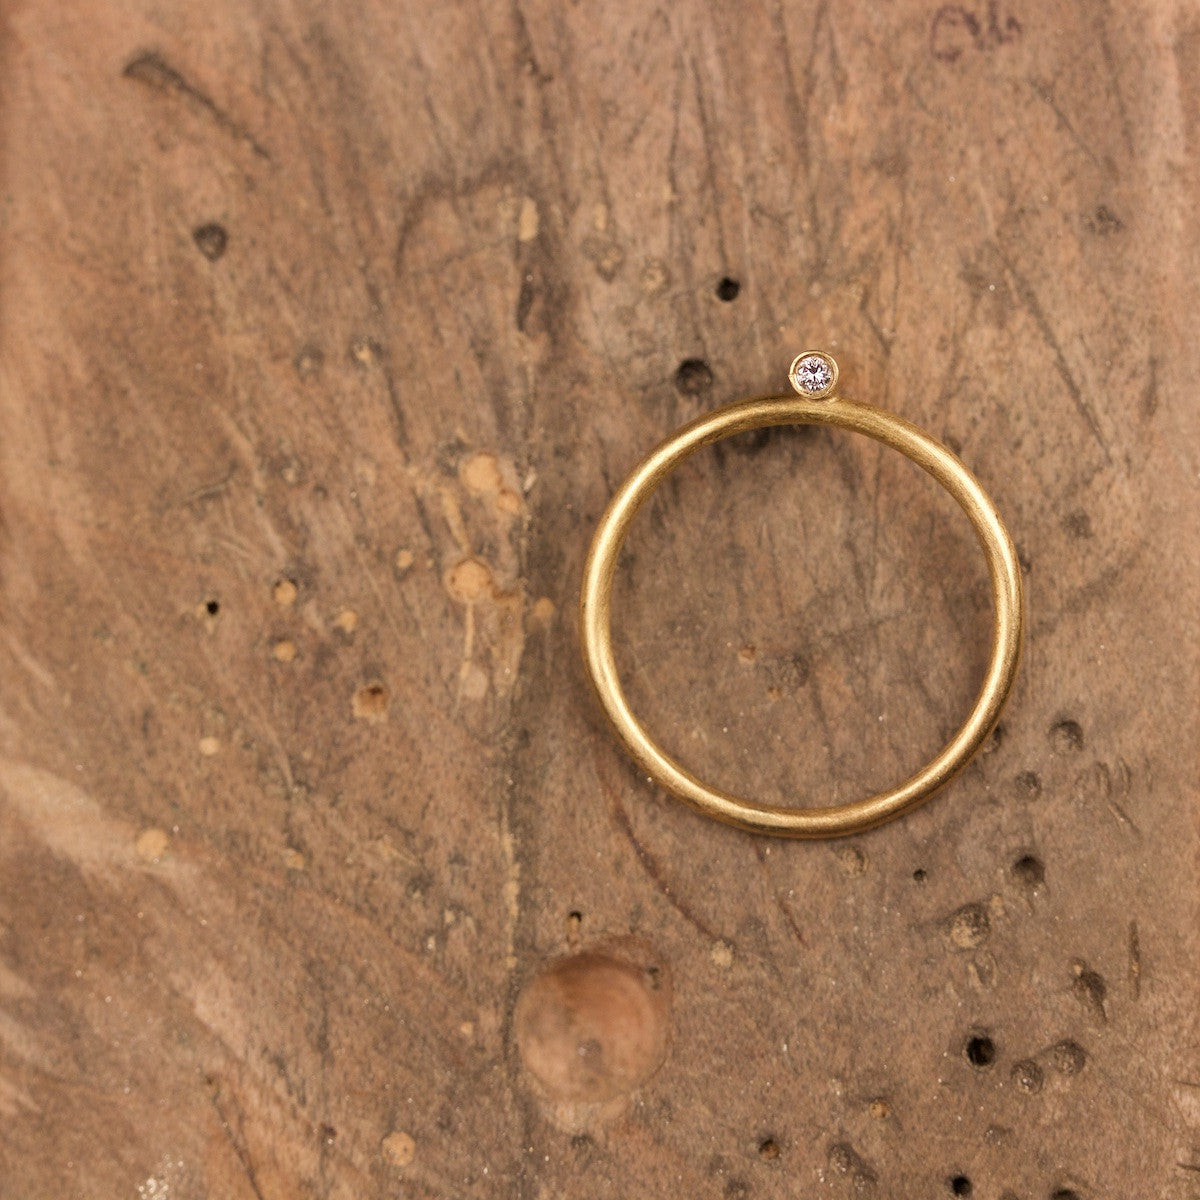 'Neon' Fairtrade Gold Ring with Diamonds